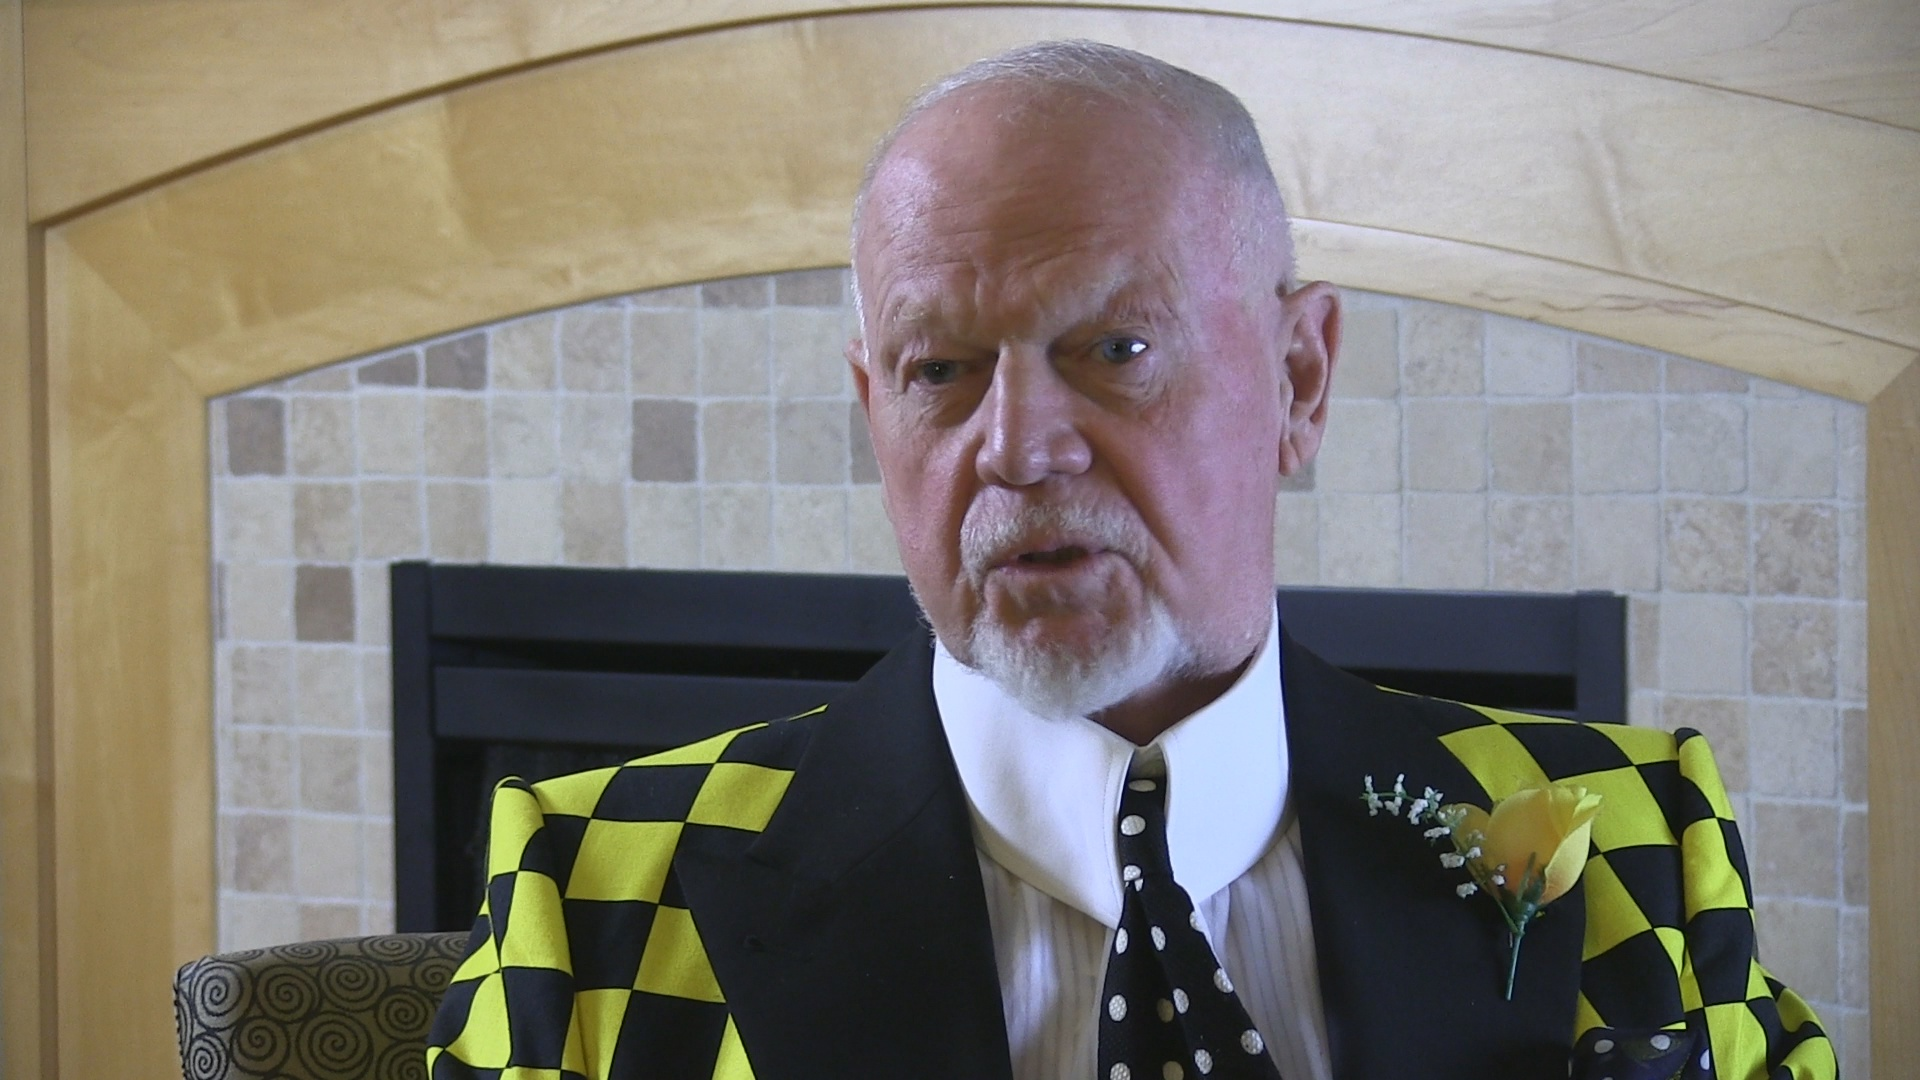 Don Cherry in The Father of Hockey